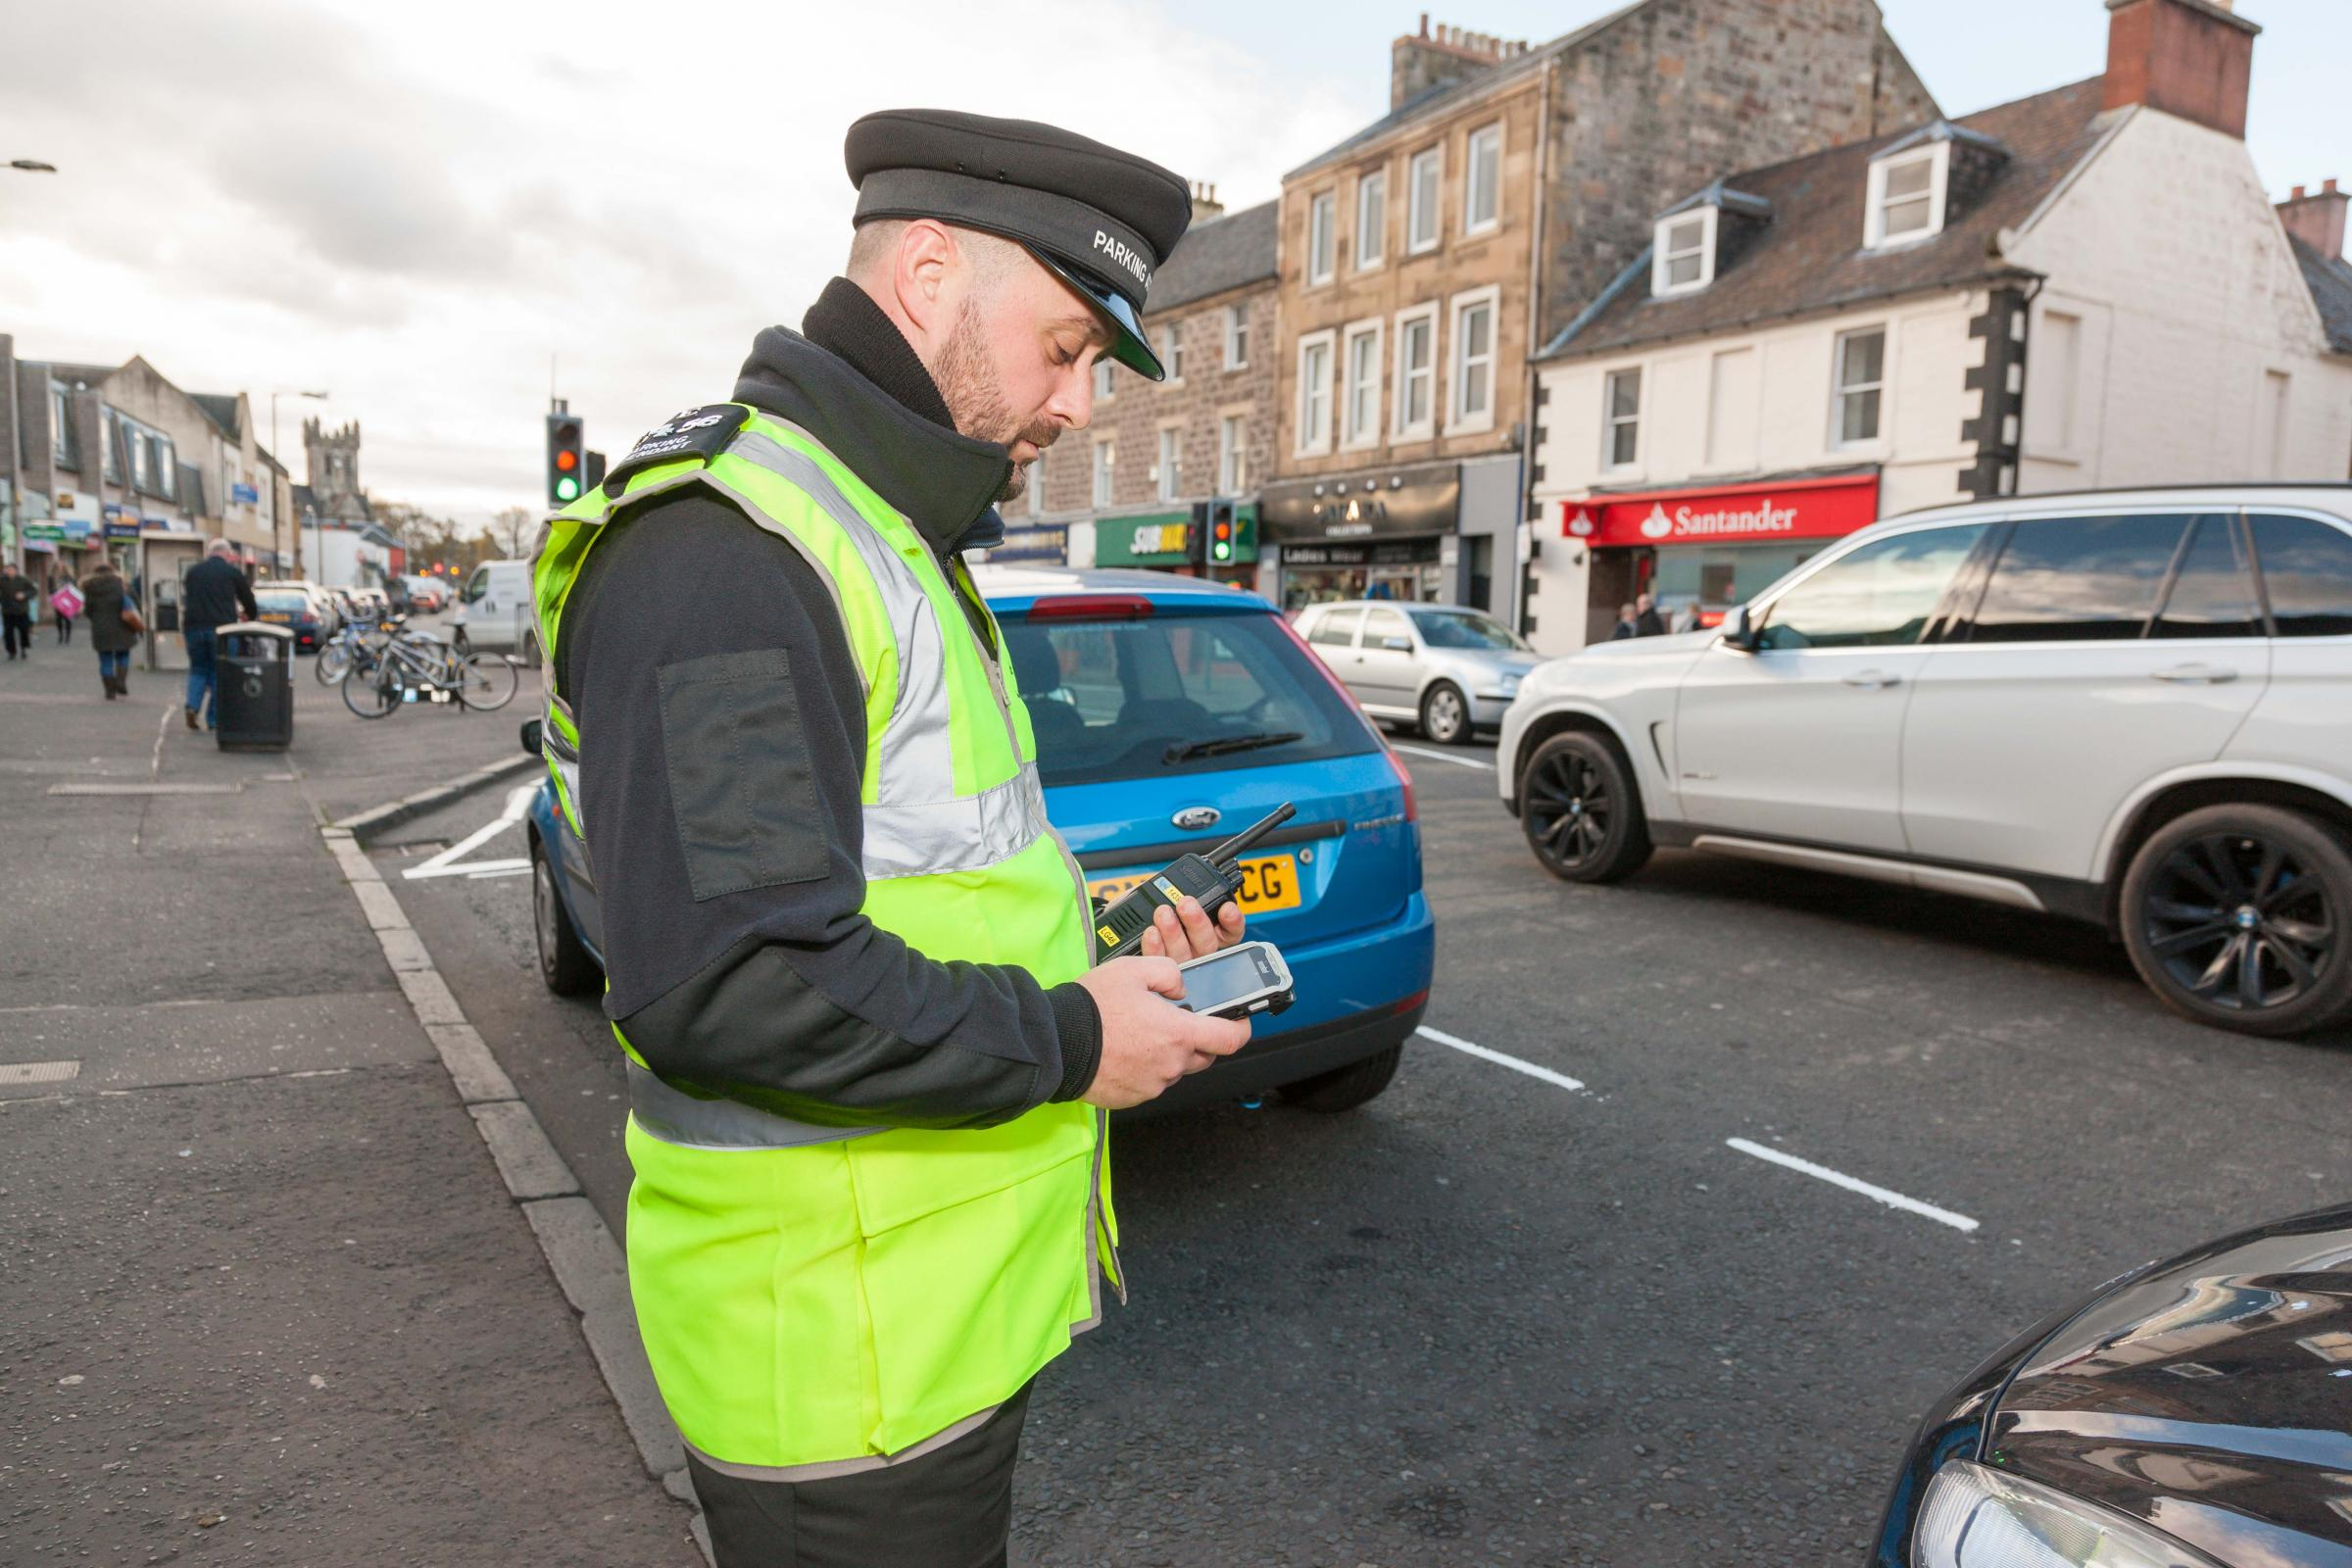 A parking attendant on patrol in Musselburgh